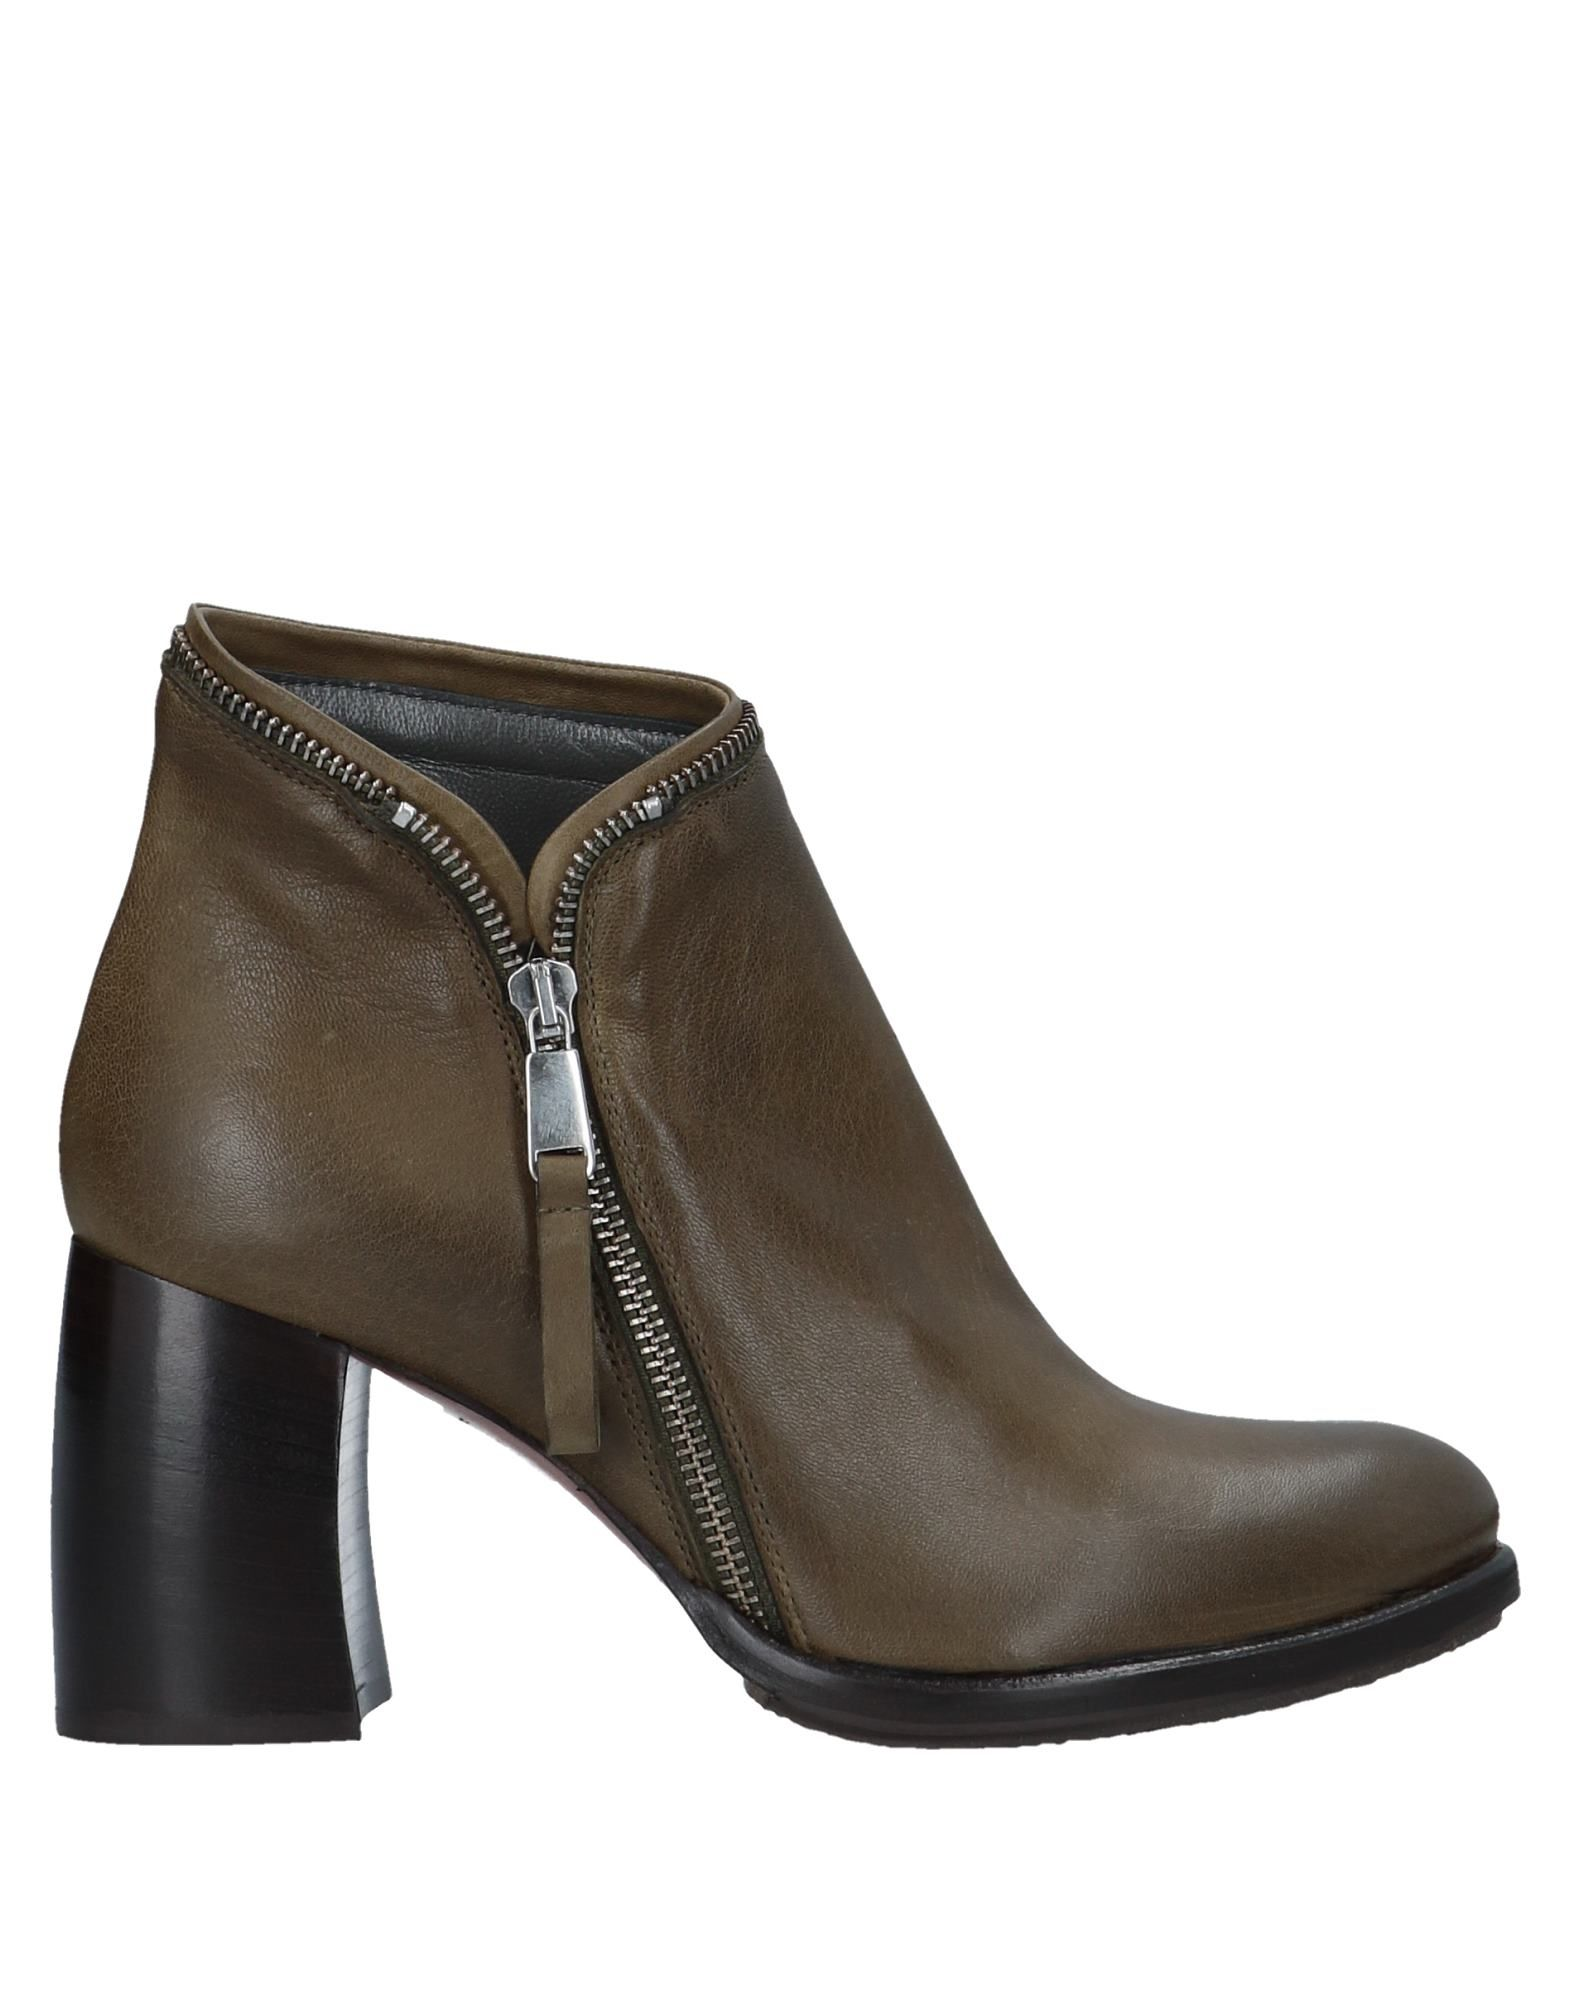 Ixos on Ankle Boot - Women Ixos Ankle Boots online on Ixos  Canada - 11481976DX ca6a8c